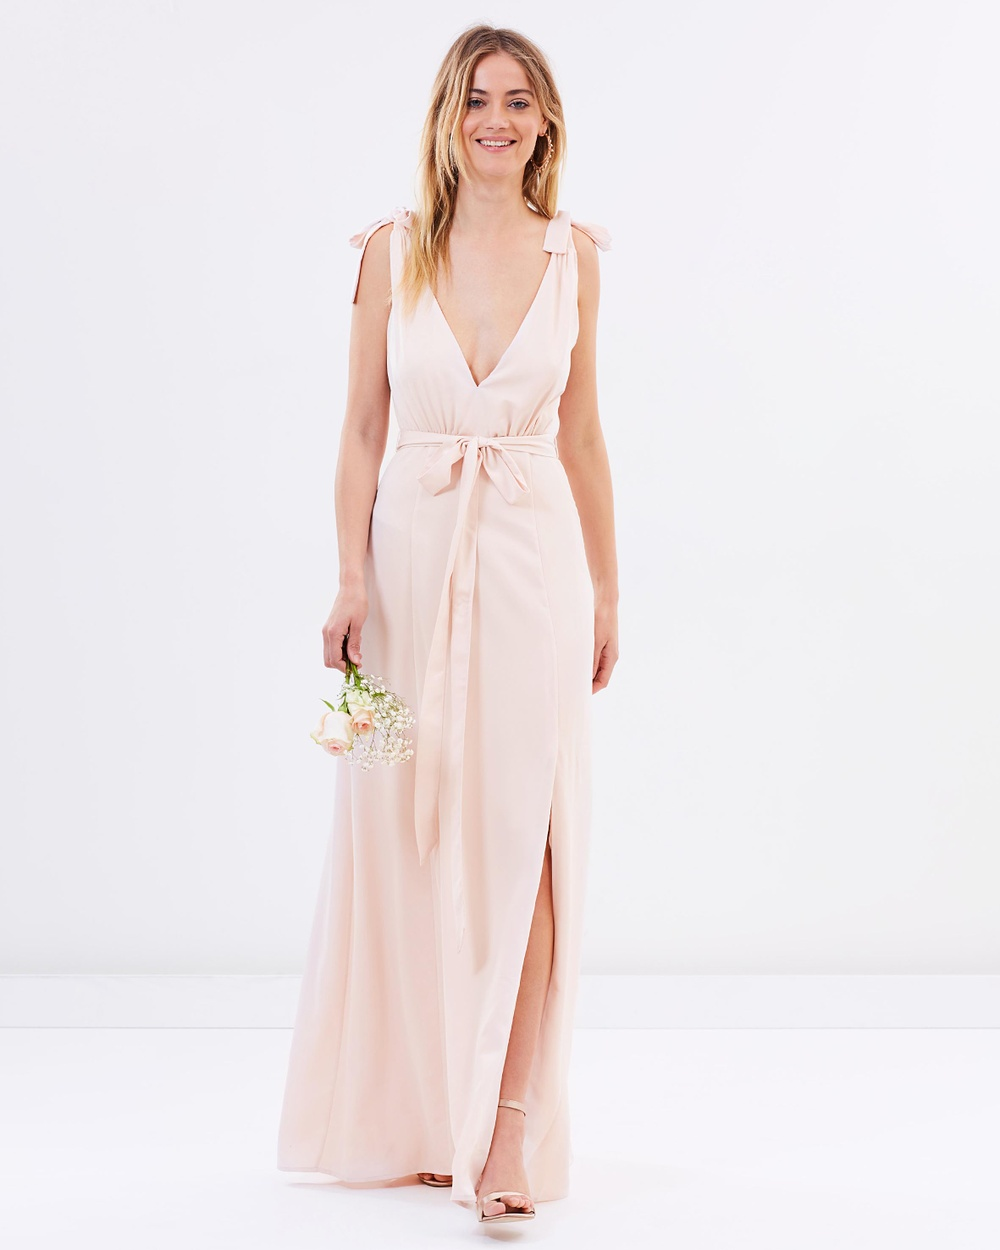 Atmos & Here ICONIC EXCLUSIVE Amelie V Neck Maxi Dress Bridesmaid Dresses Champagne ICONIC EXCLUSIVE Amelie V-Neck Maxi Dress